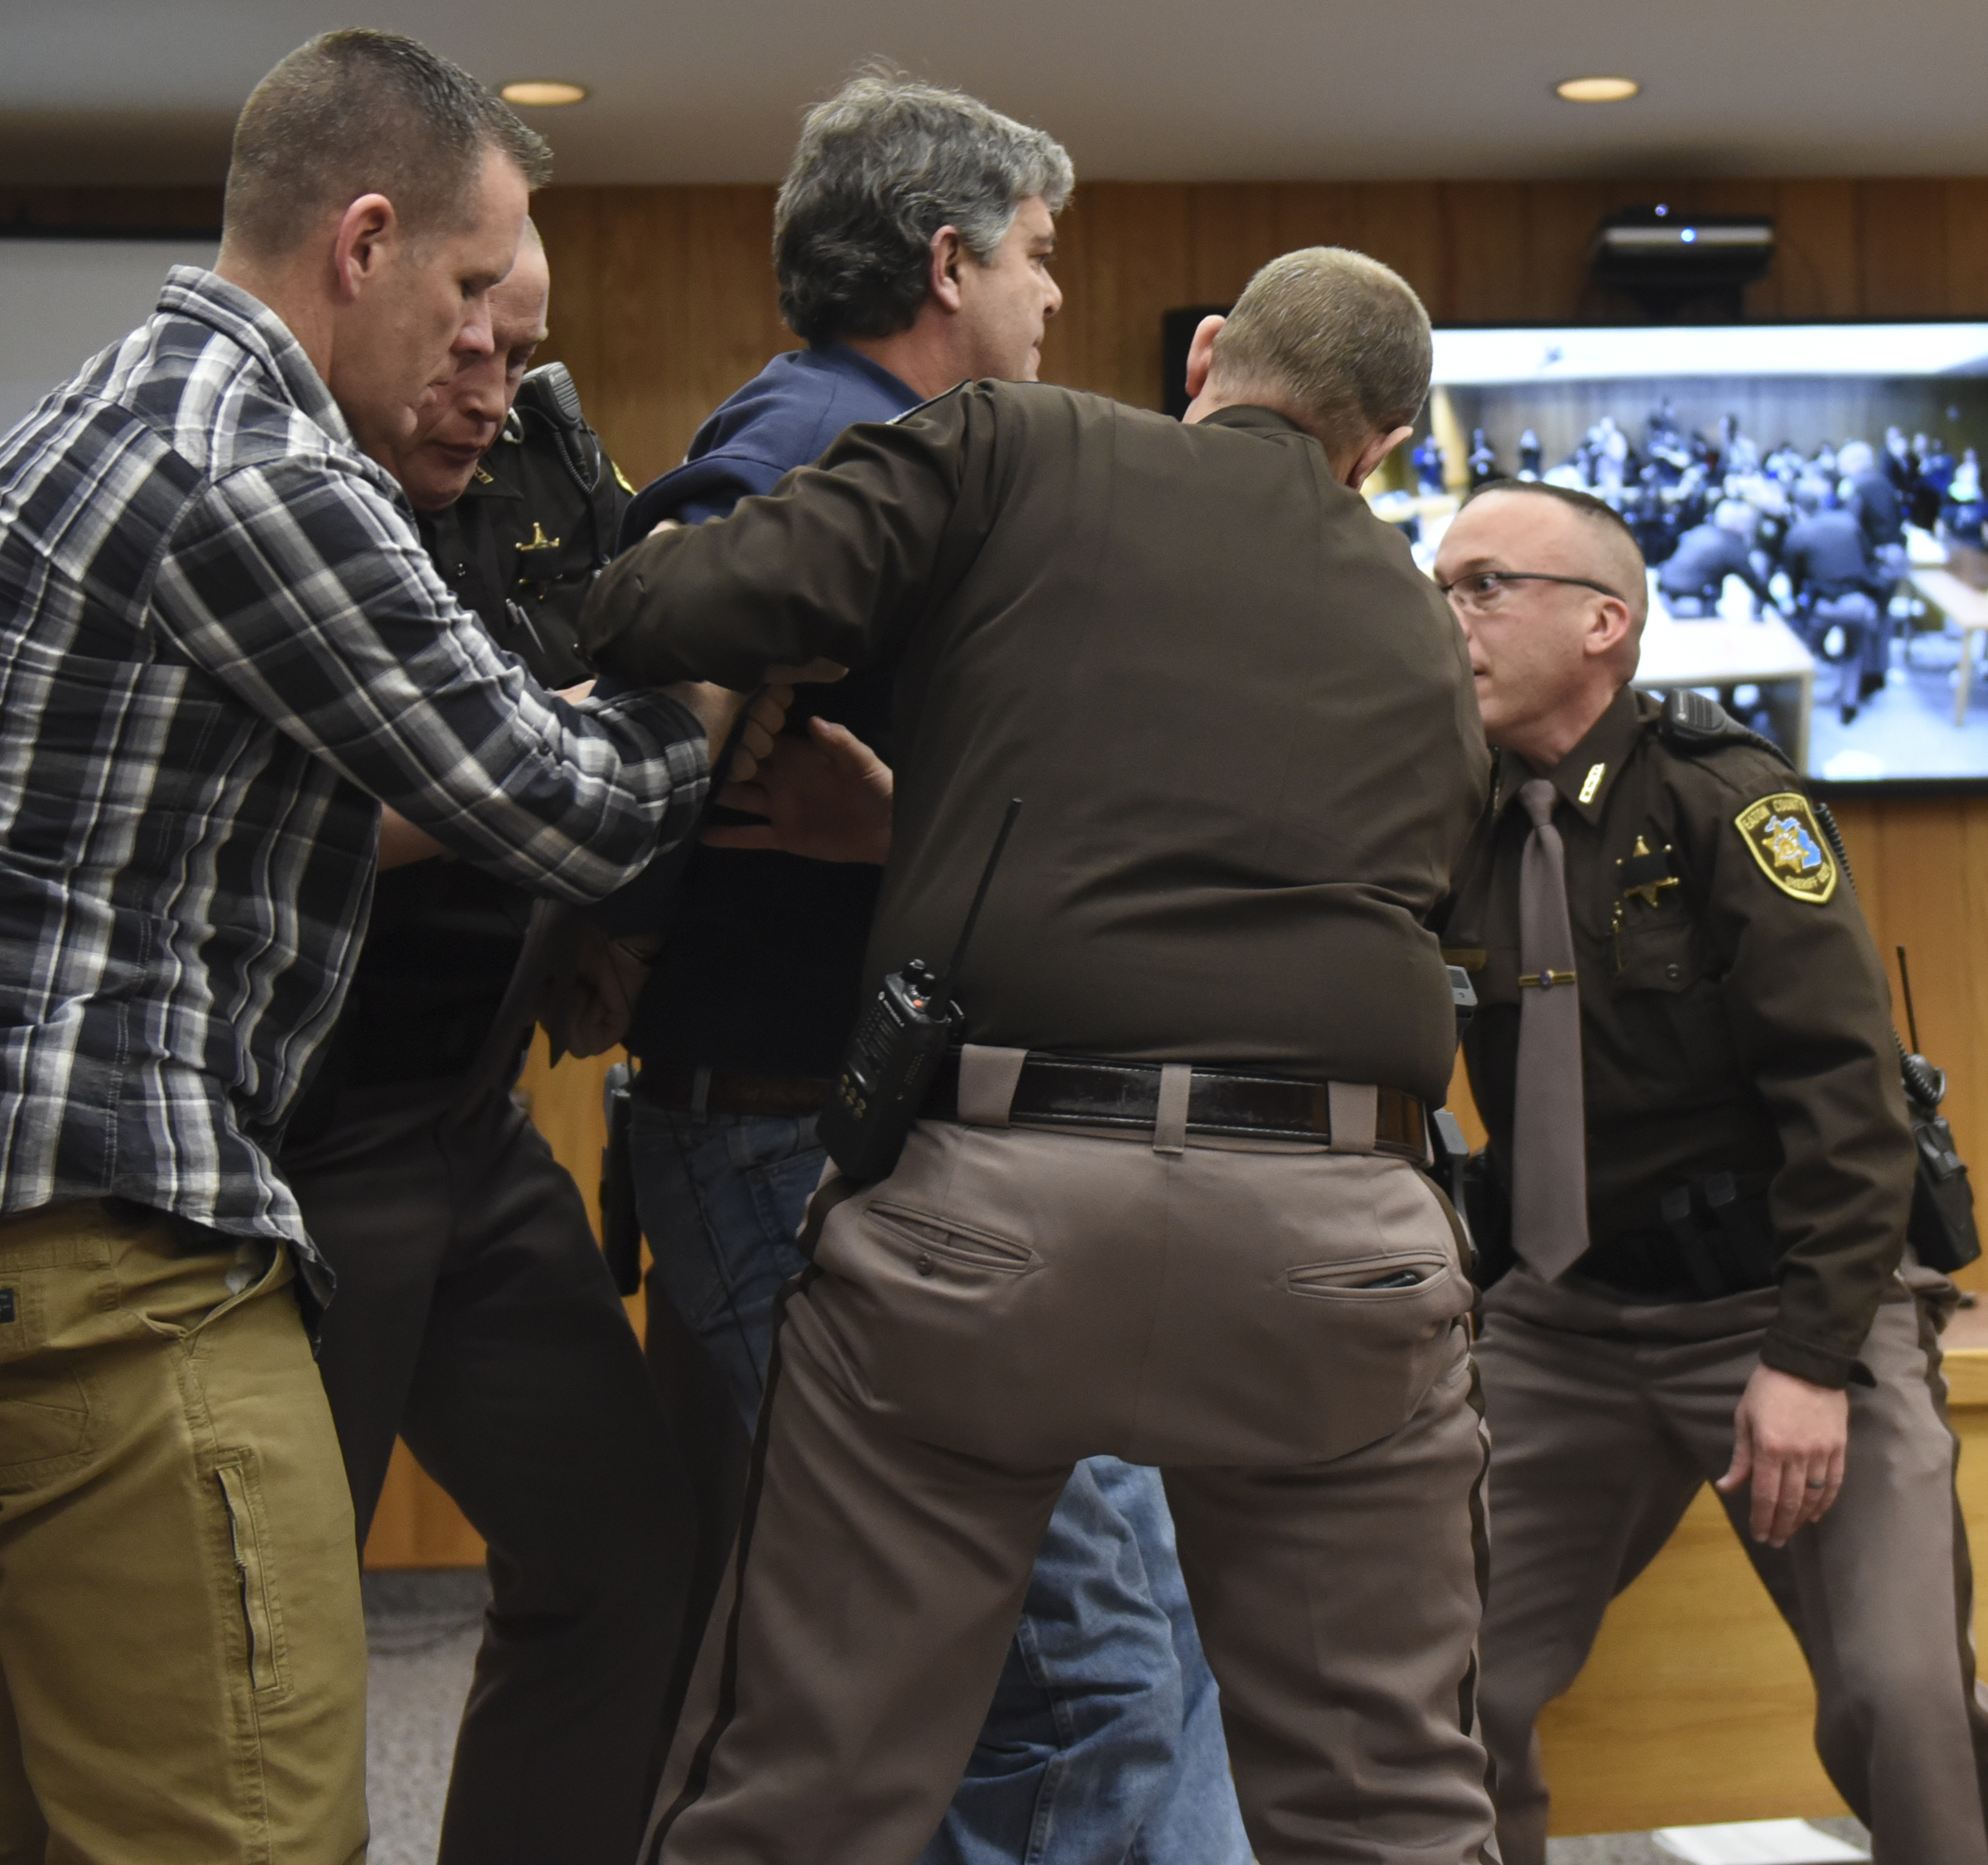 Eaton County Sheriff's deputies restrain Randall Margraves, father of three victims of Larry Nassar, Friday, Feb. 2, 2018, in Eaton County Circuit Court in Charlotte, Mich.  The incident came during the third and final sentencing hearing for Nassar on sexual abuse charges. The charges in this case focus on his work with Twistars, an elite Michigan gymnastics club.   (Matthew Dae Smith/Lansing State Journal via AP)